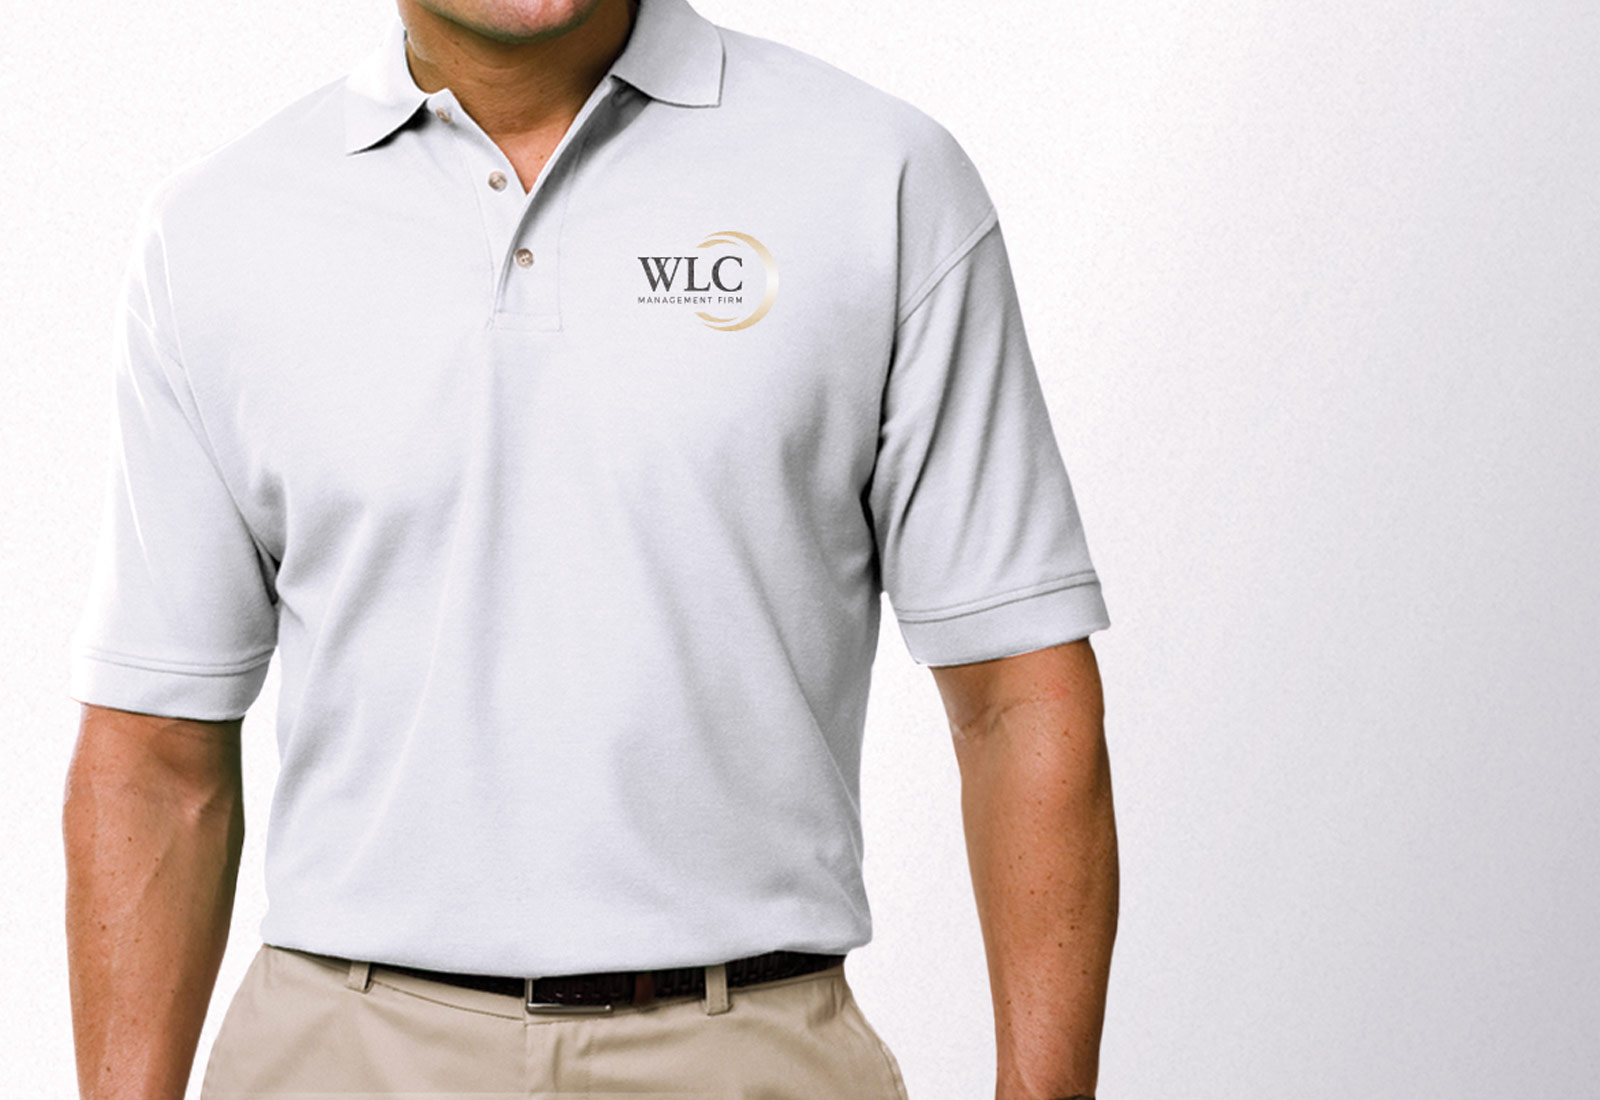 WLC Management Firm Polo Shirt Design